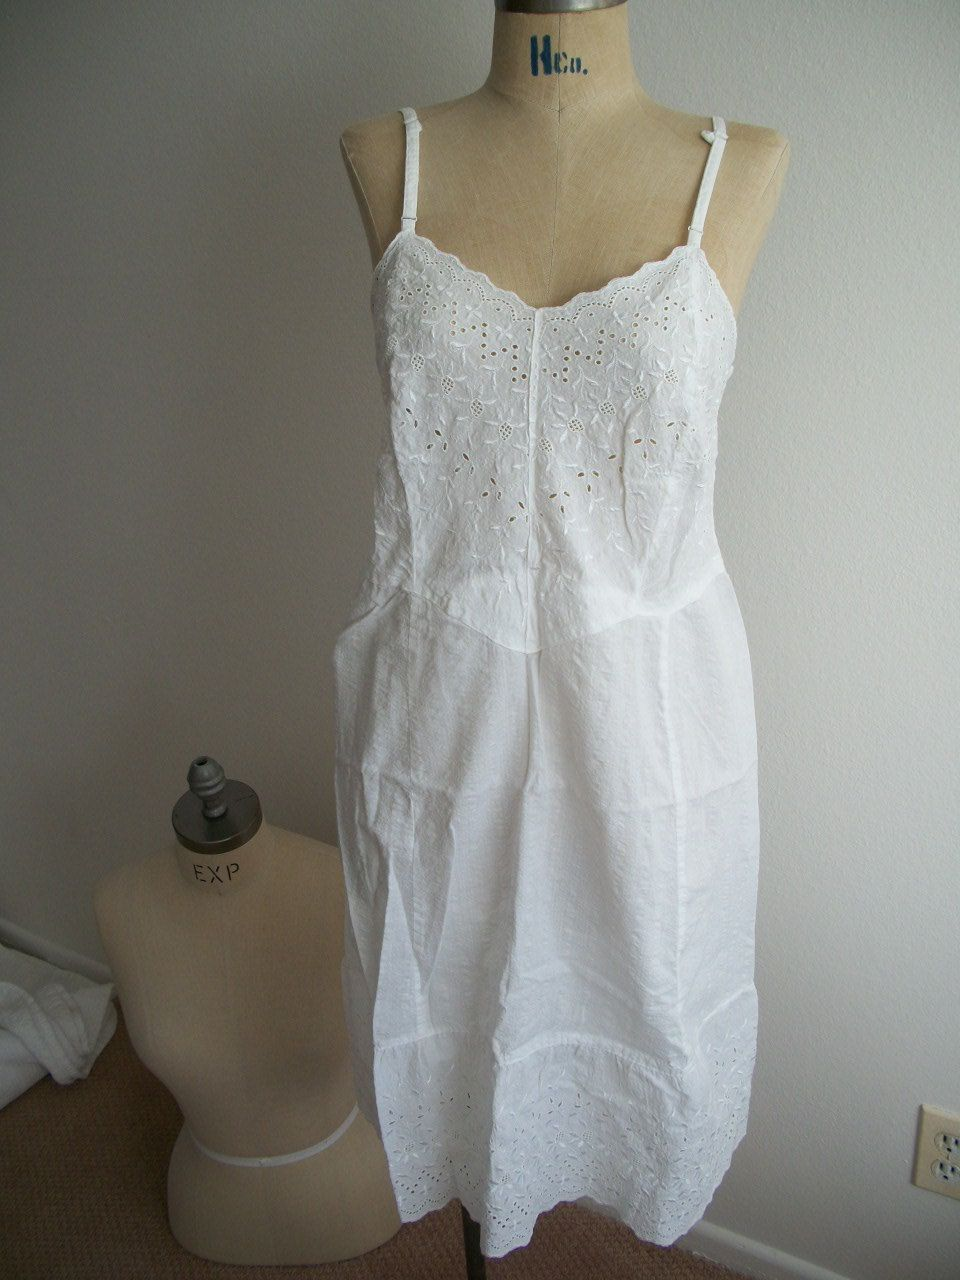 Pretty Little Vintage Cotton White Slip Dress 16 00 Via Etsy White Slip Dress White Slip Cotton Slip